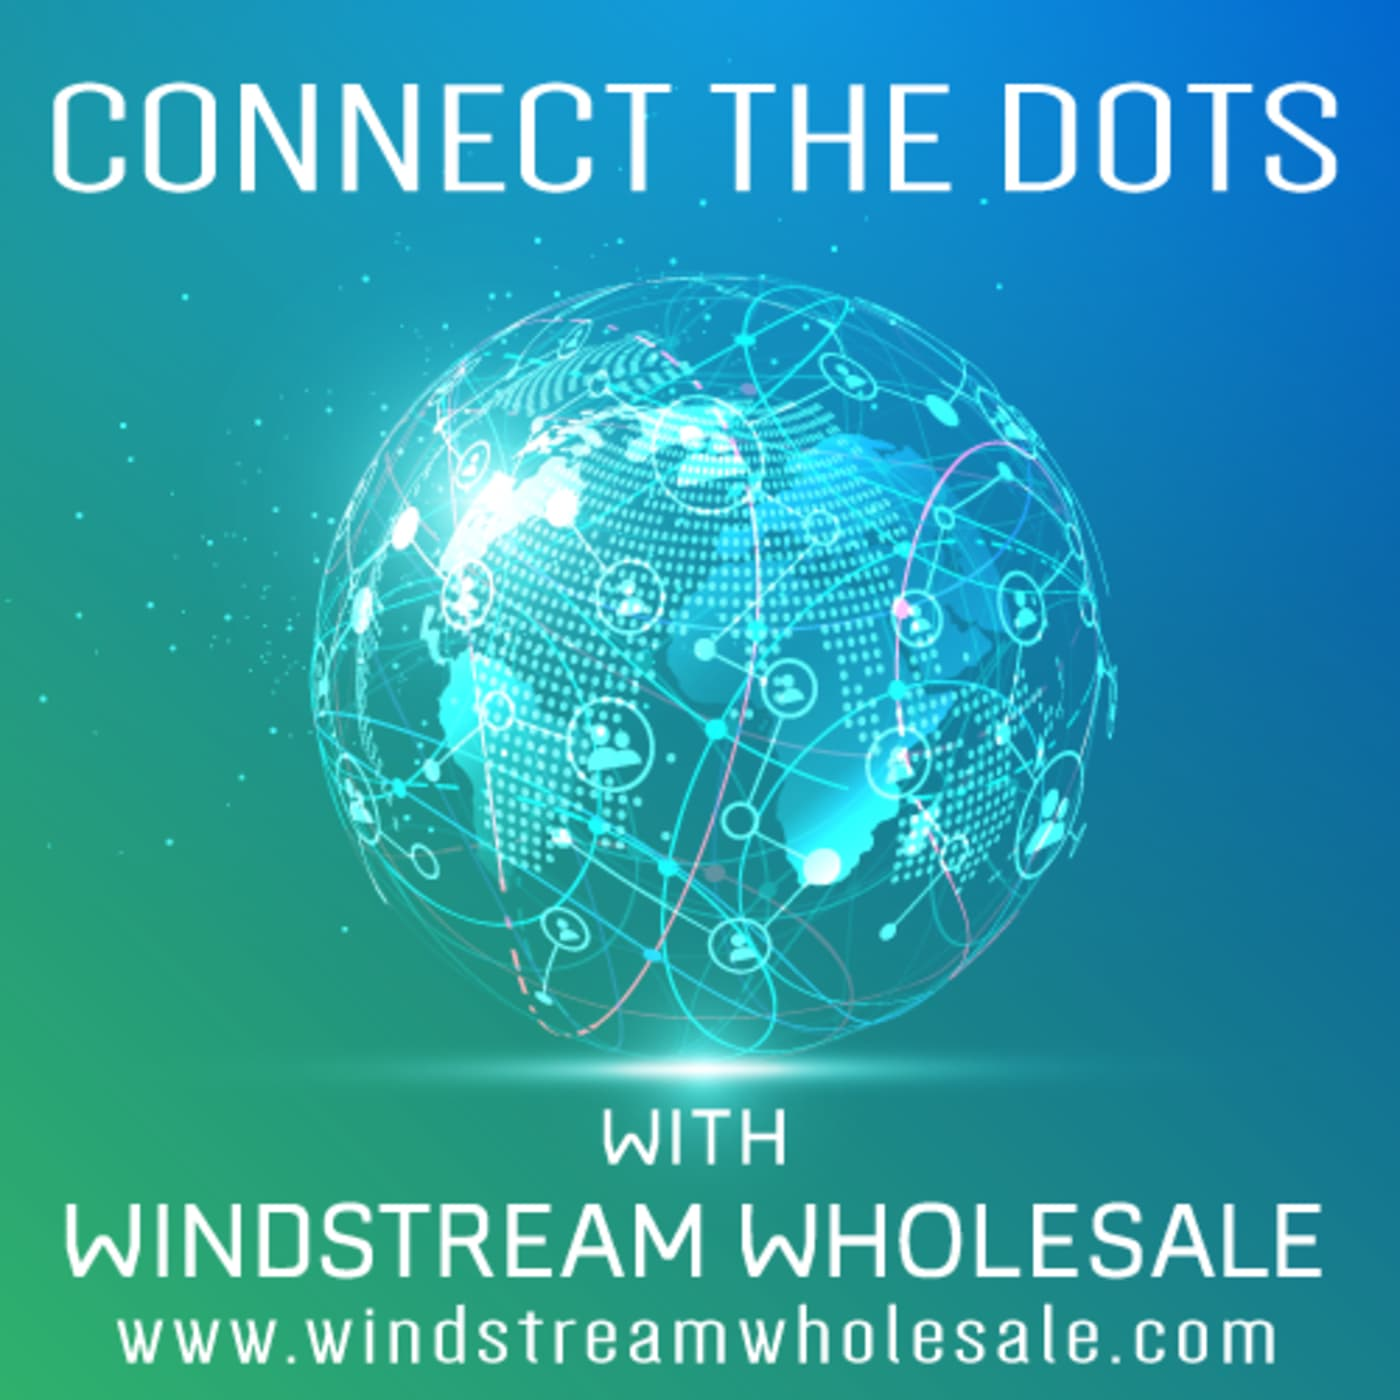 Connect The Dots with Windstream Wholesale